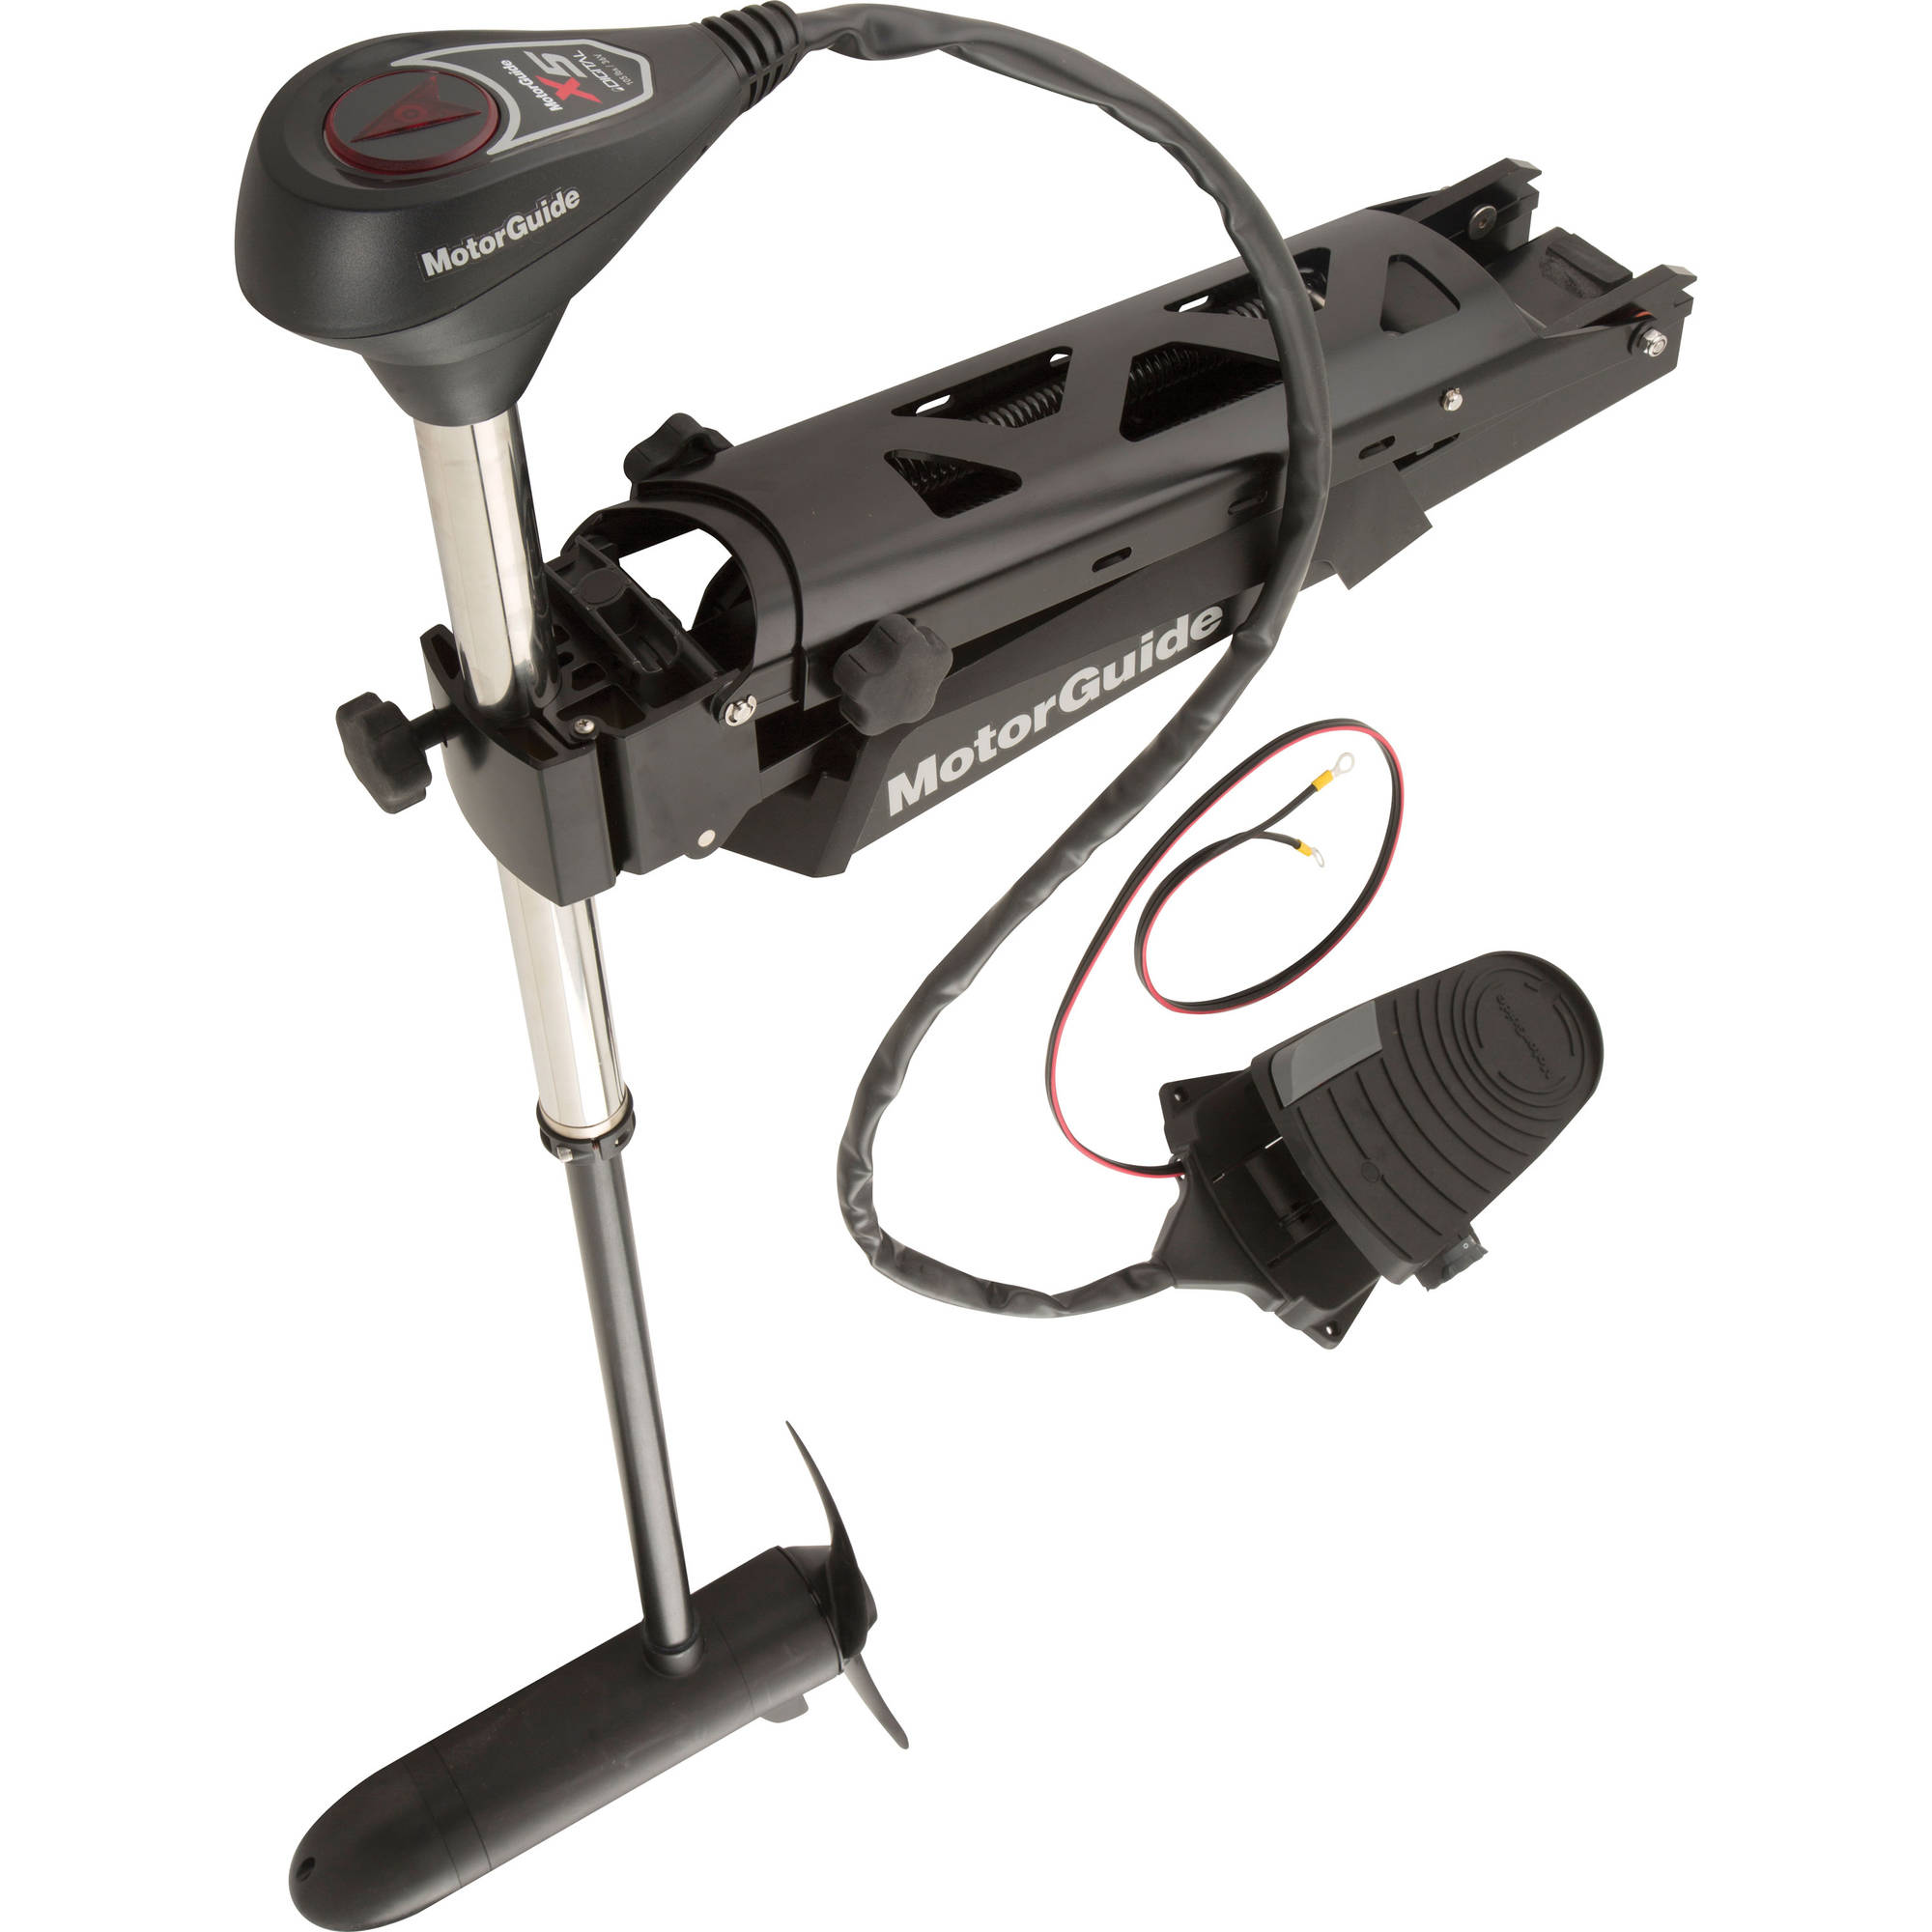 MotorGuide X5 24V Foot-Control Bow Mount Digital Variable Speed Freshwater Trolling Motor with Sonar